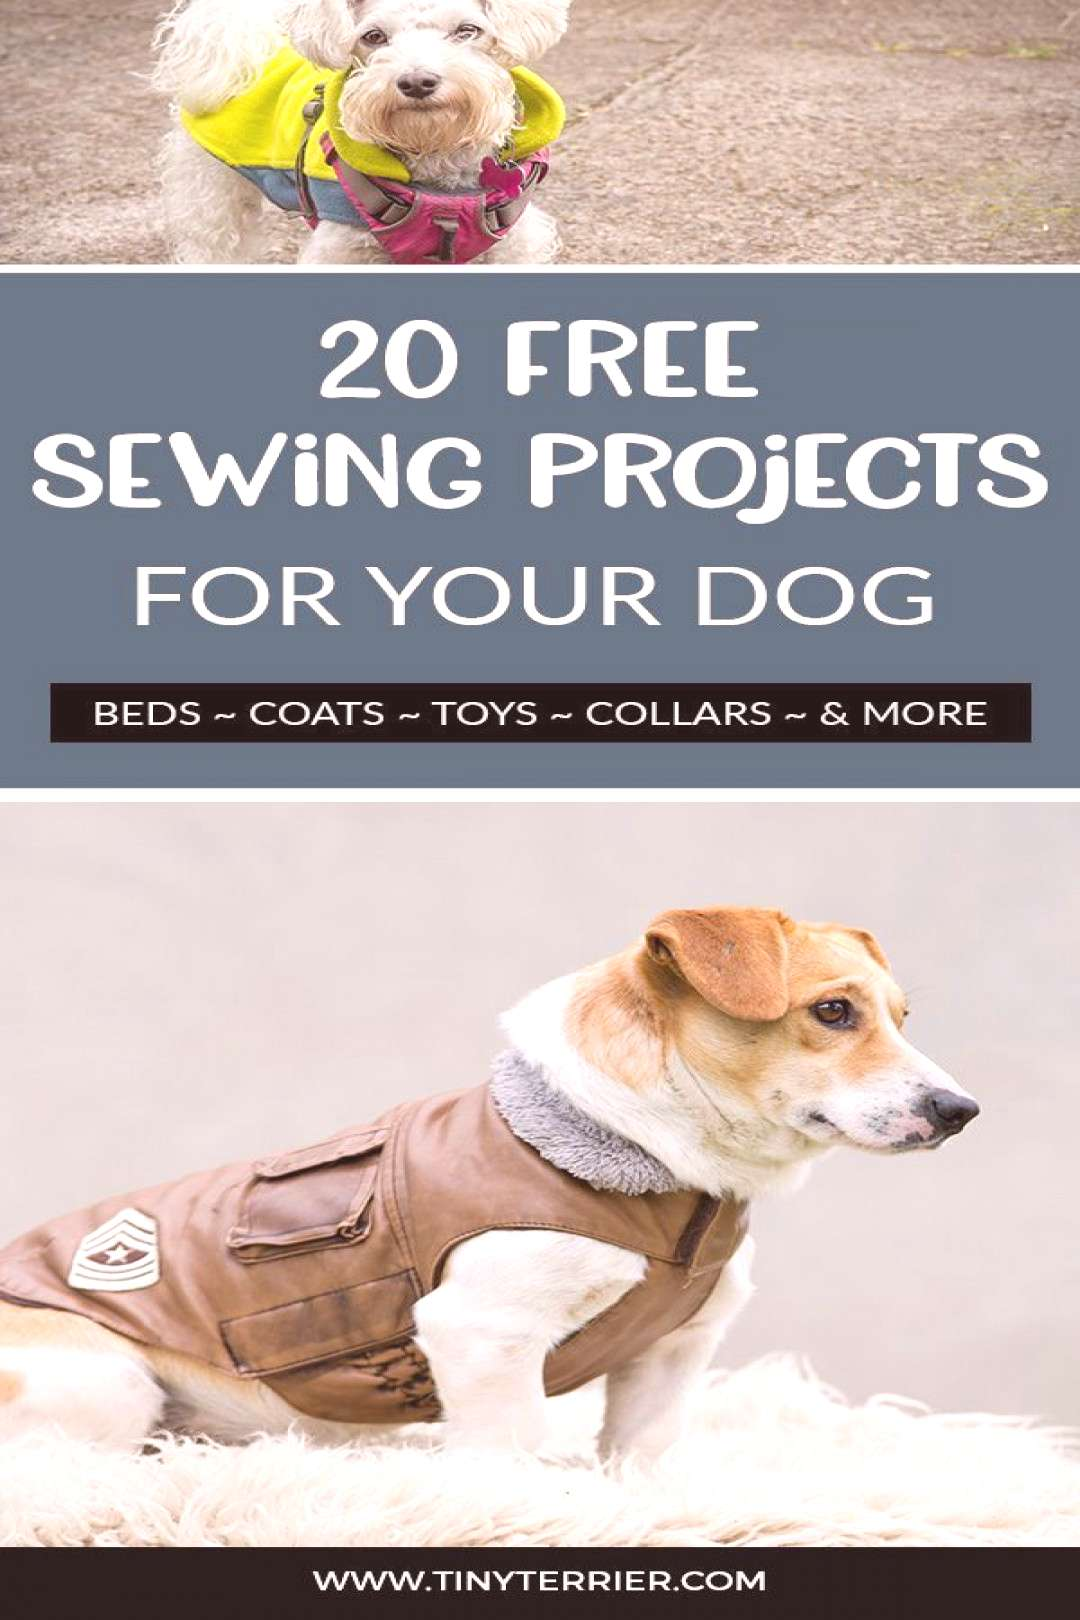 Sewing patterns for dogs! Beds, coats, toys collars & more. Get 20 fabulous free sewing projects fo